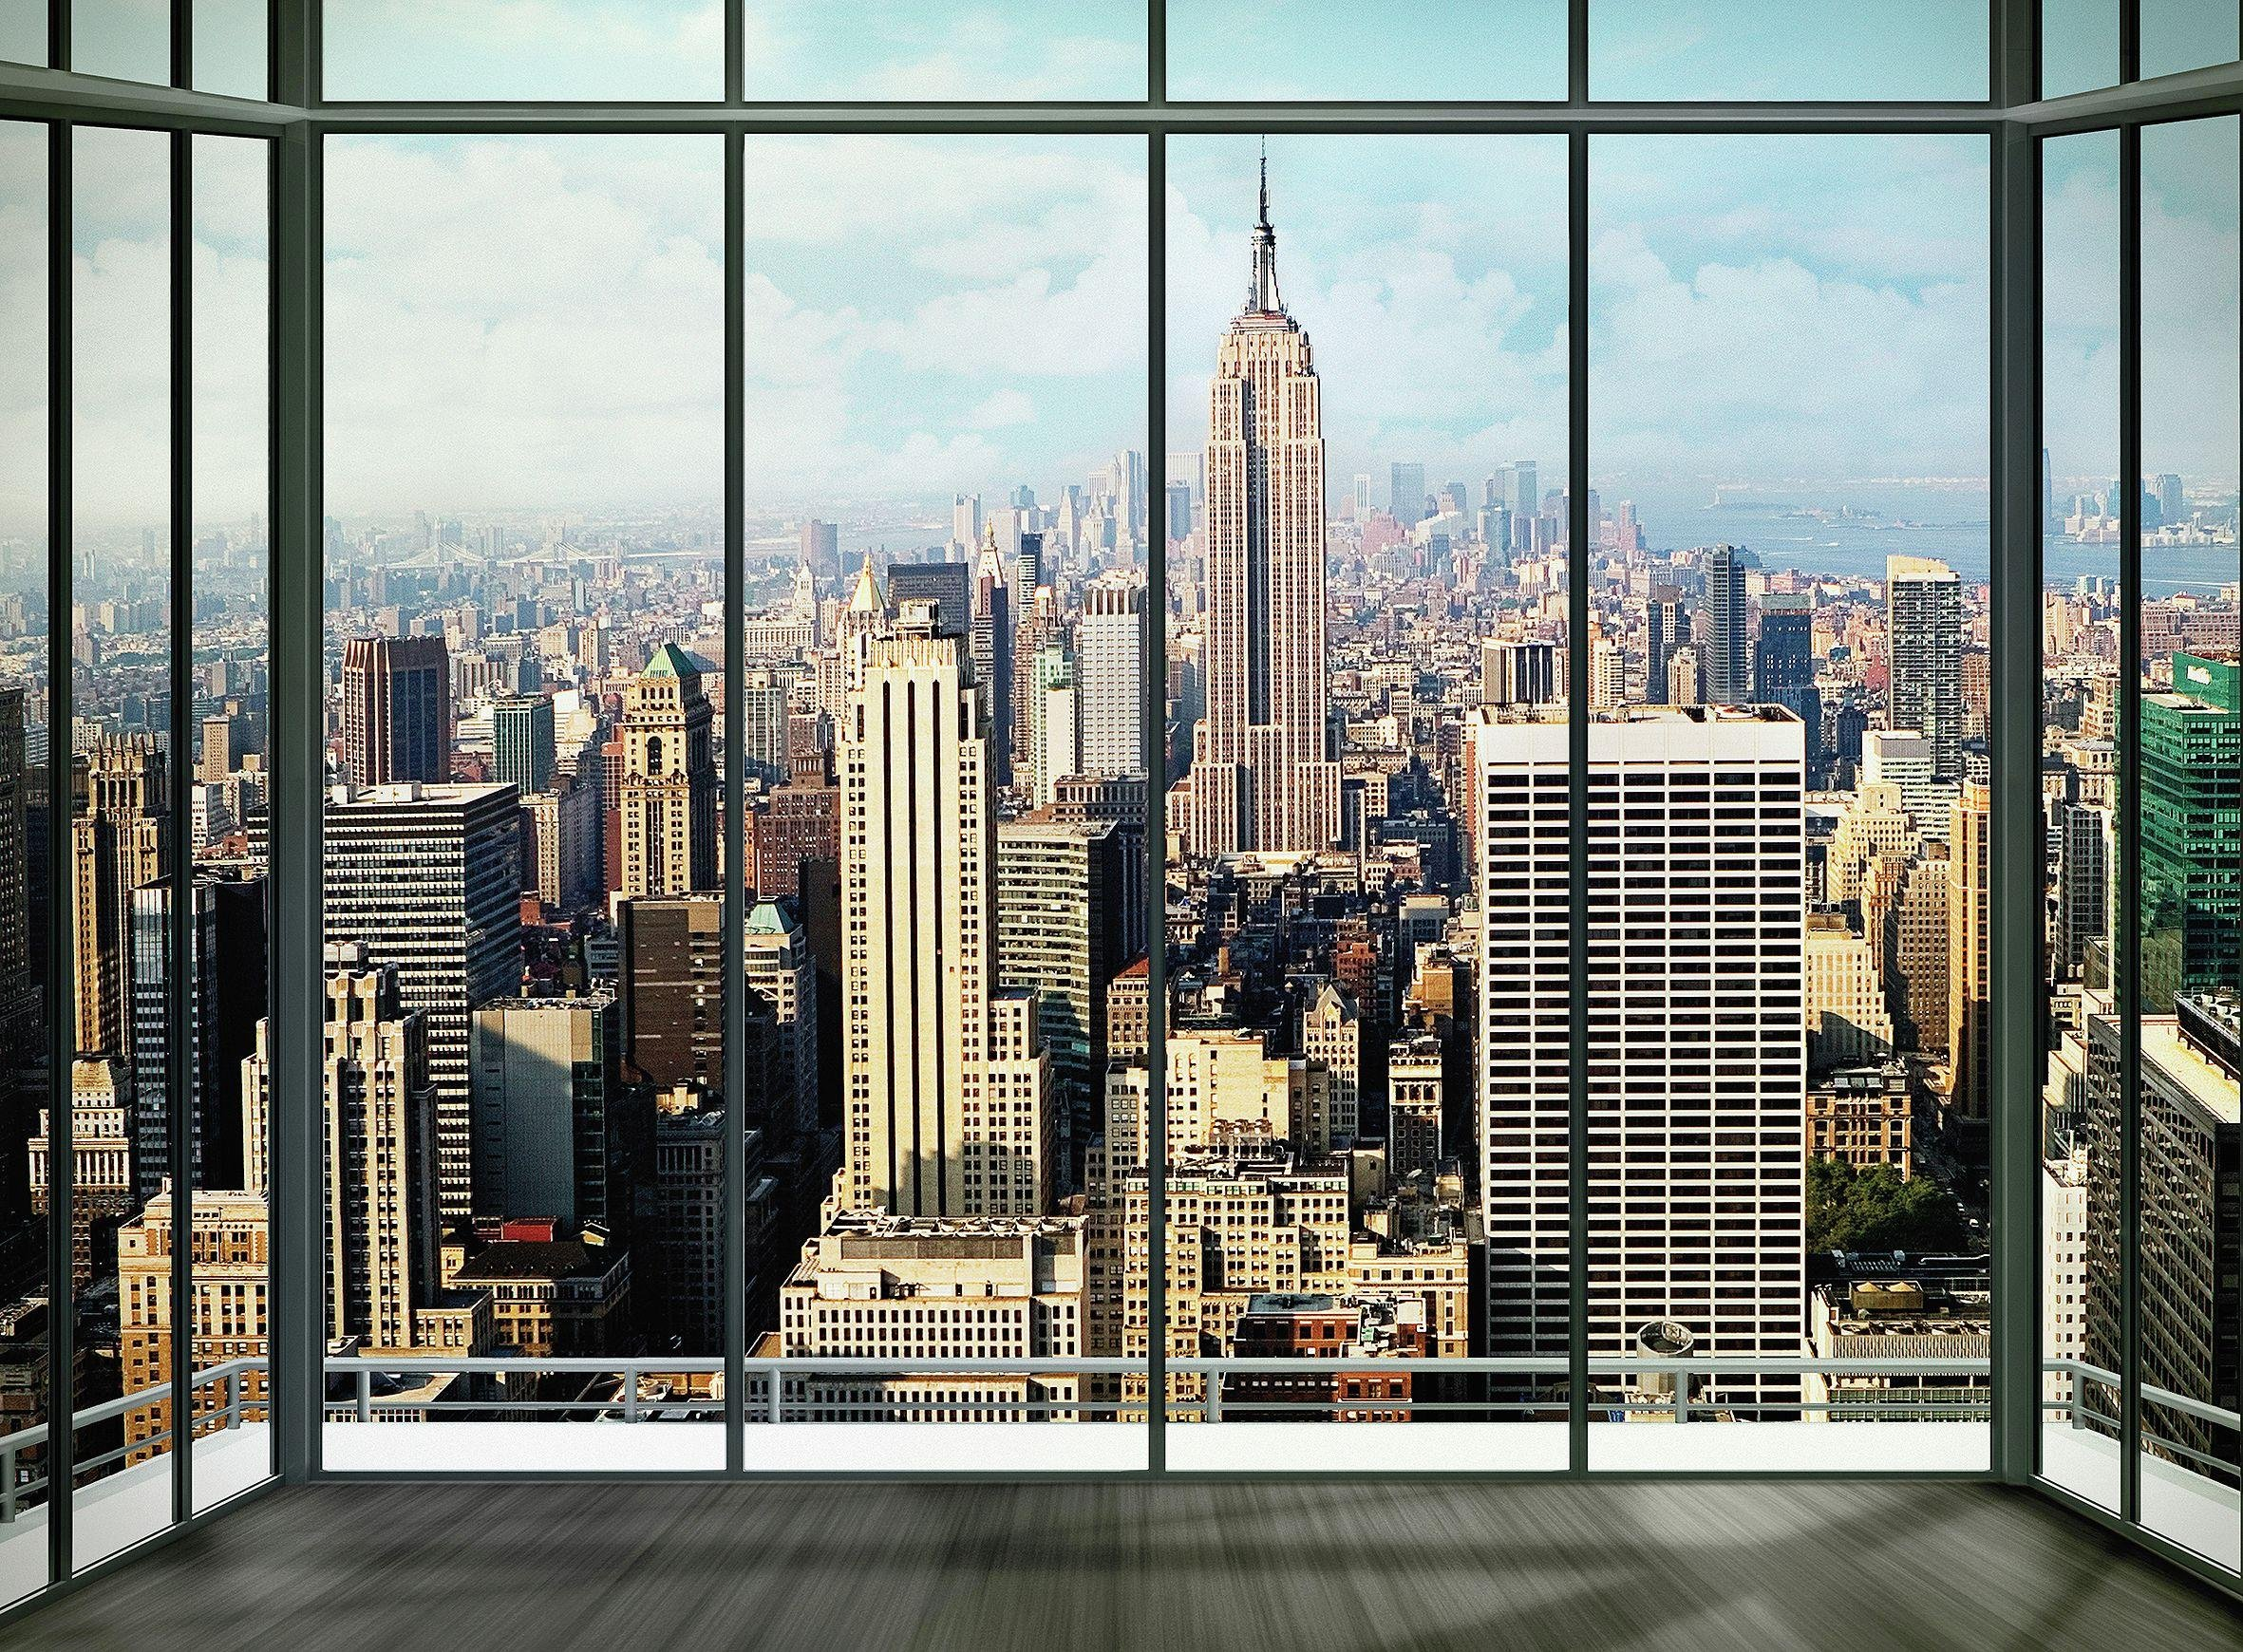 Image of 1Wall - City Window - Wall Mural